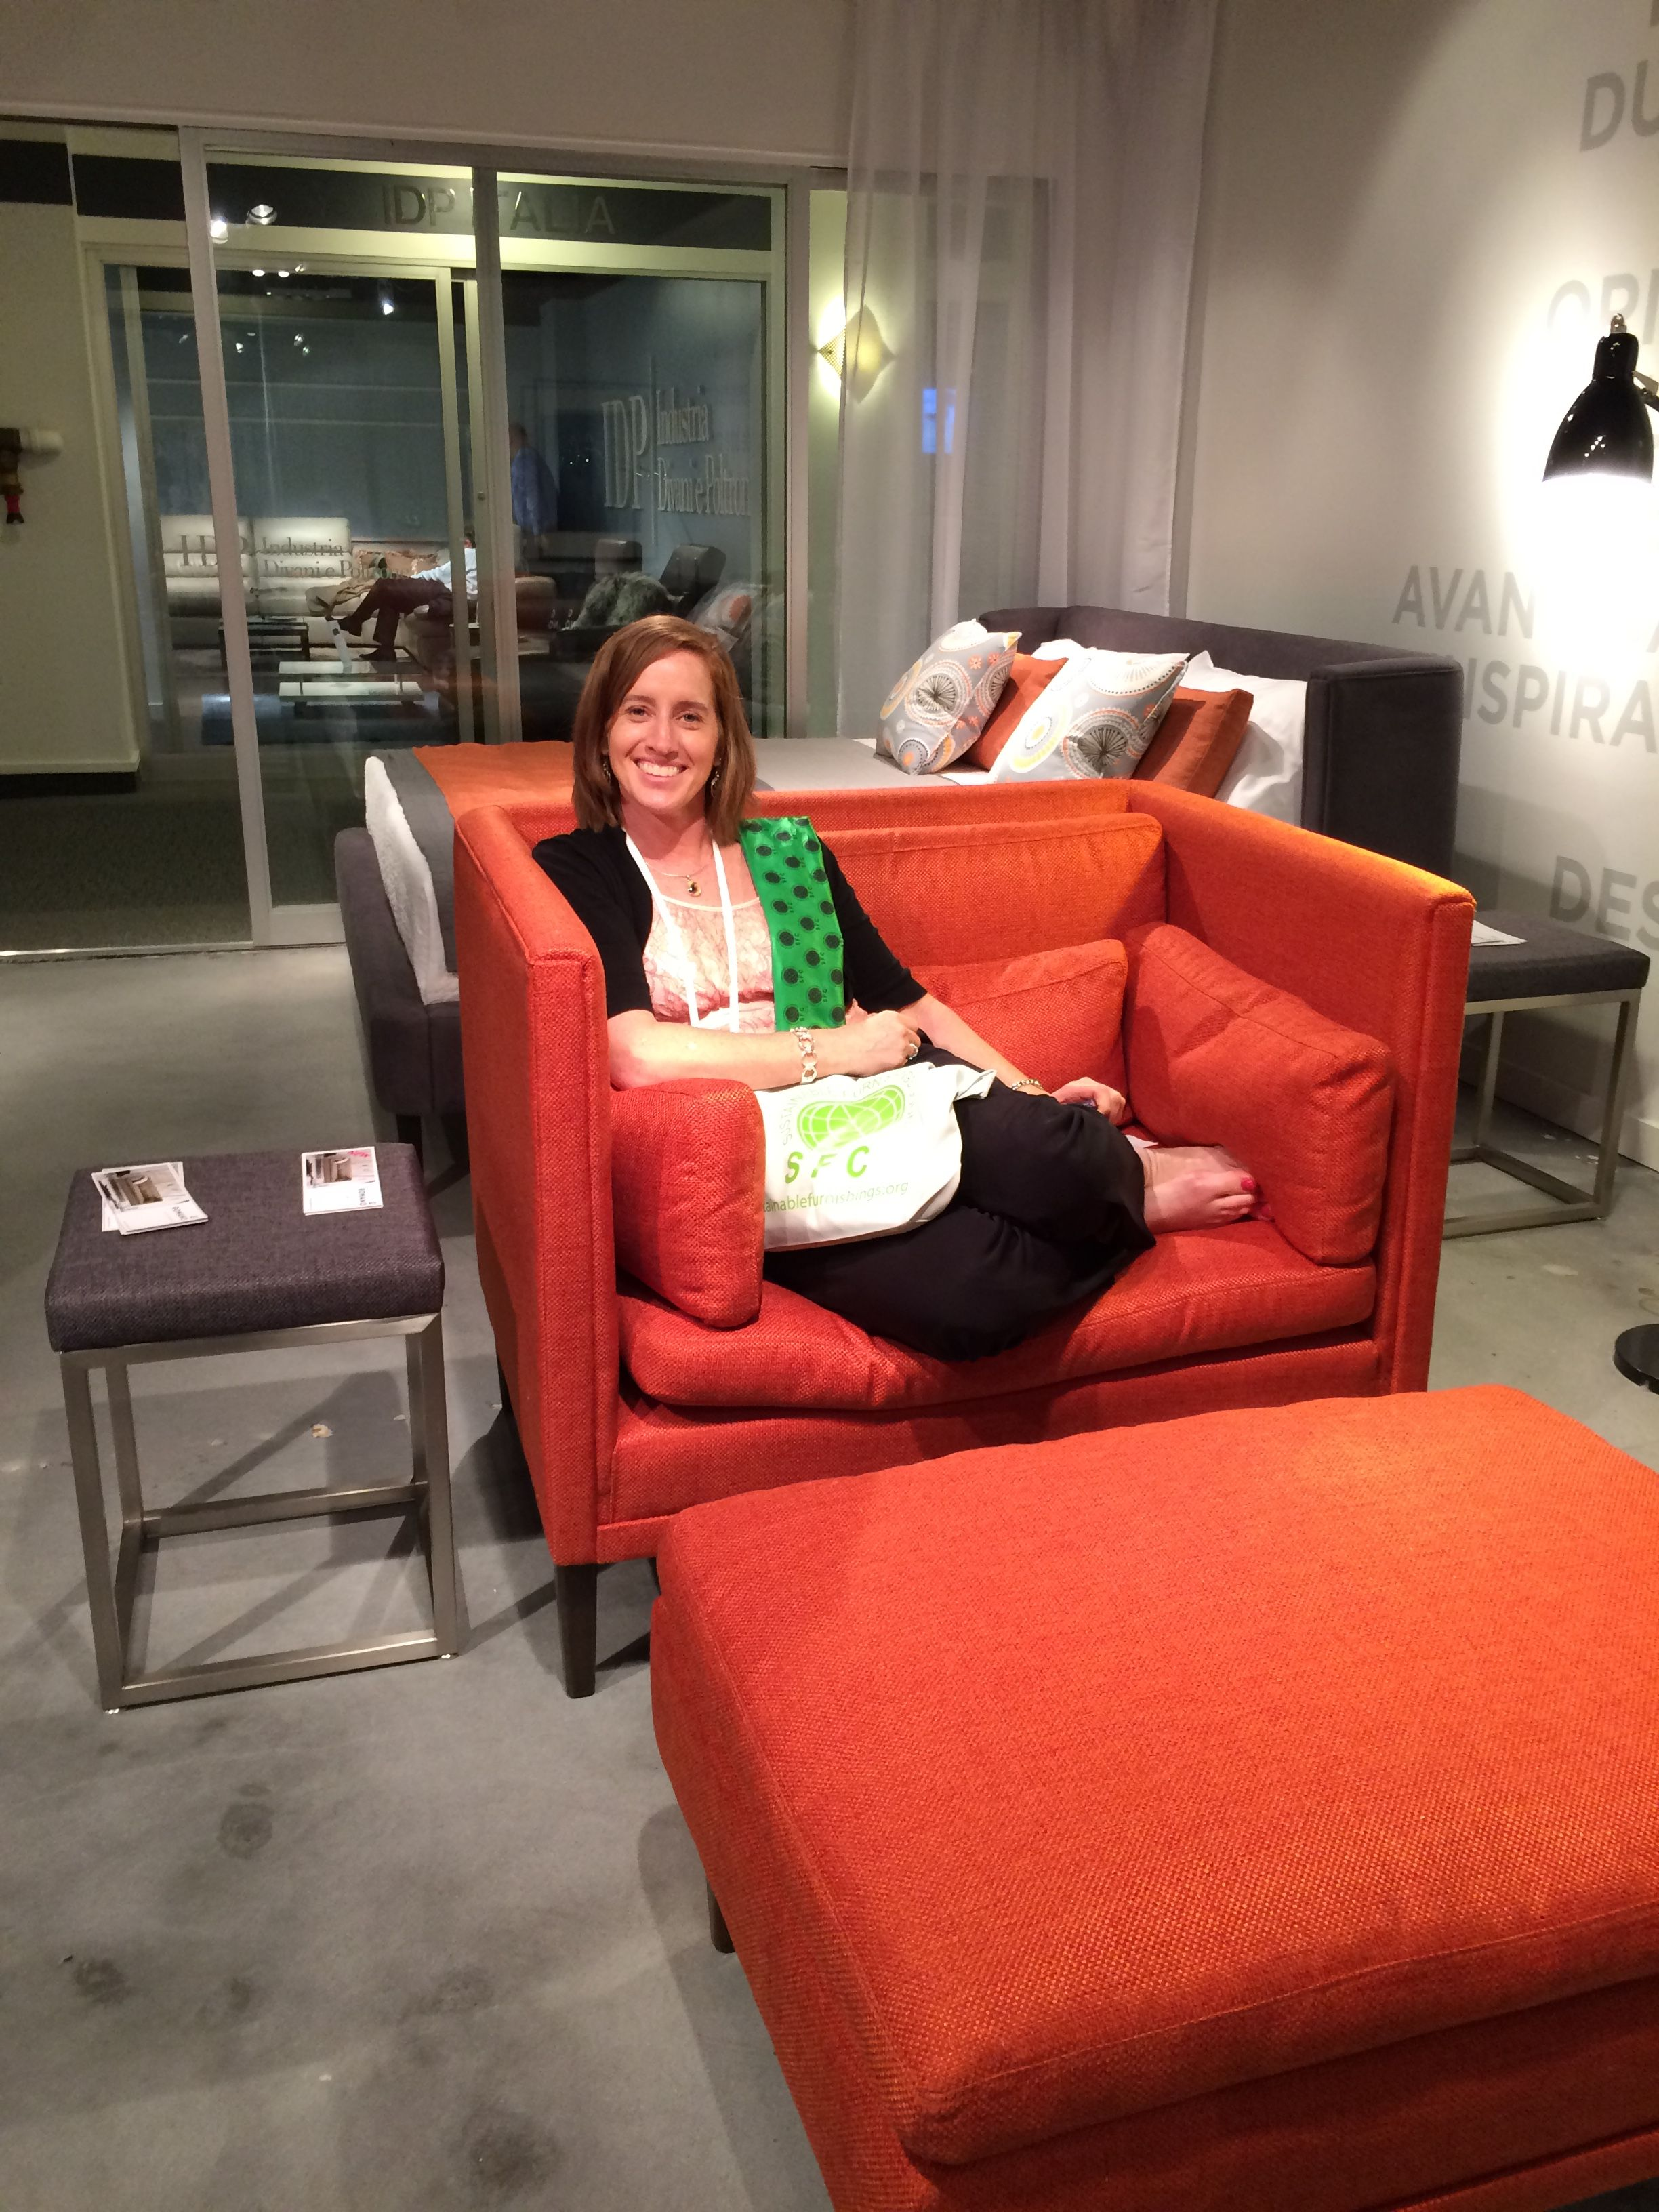 Janet Mckenzie Of The Sustainable Furnishings Councils Enjoys The